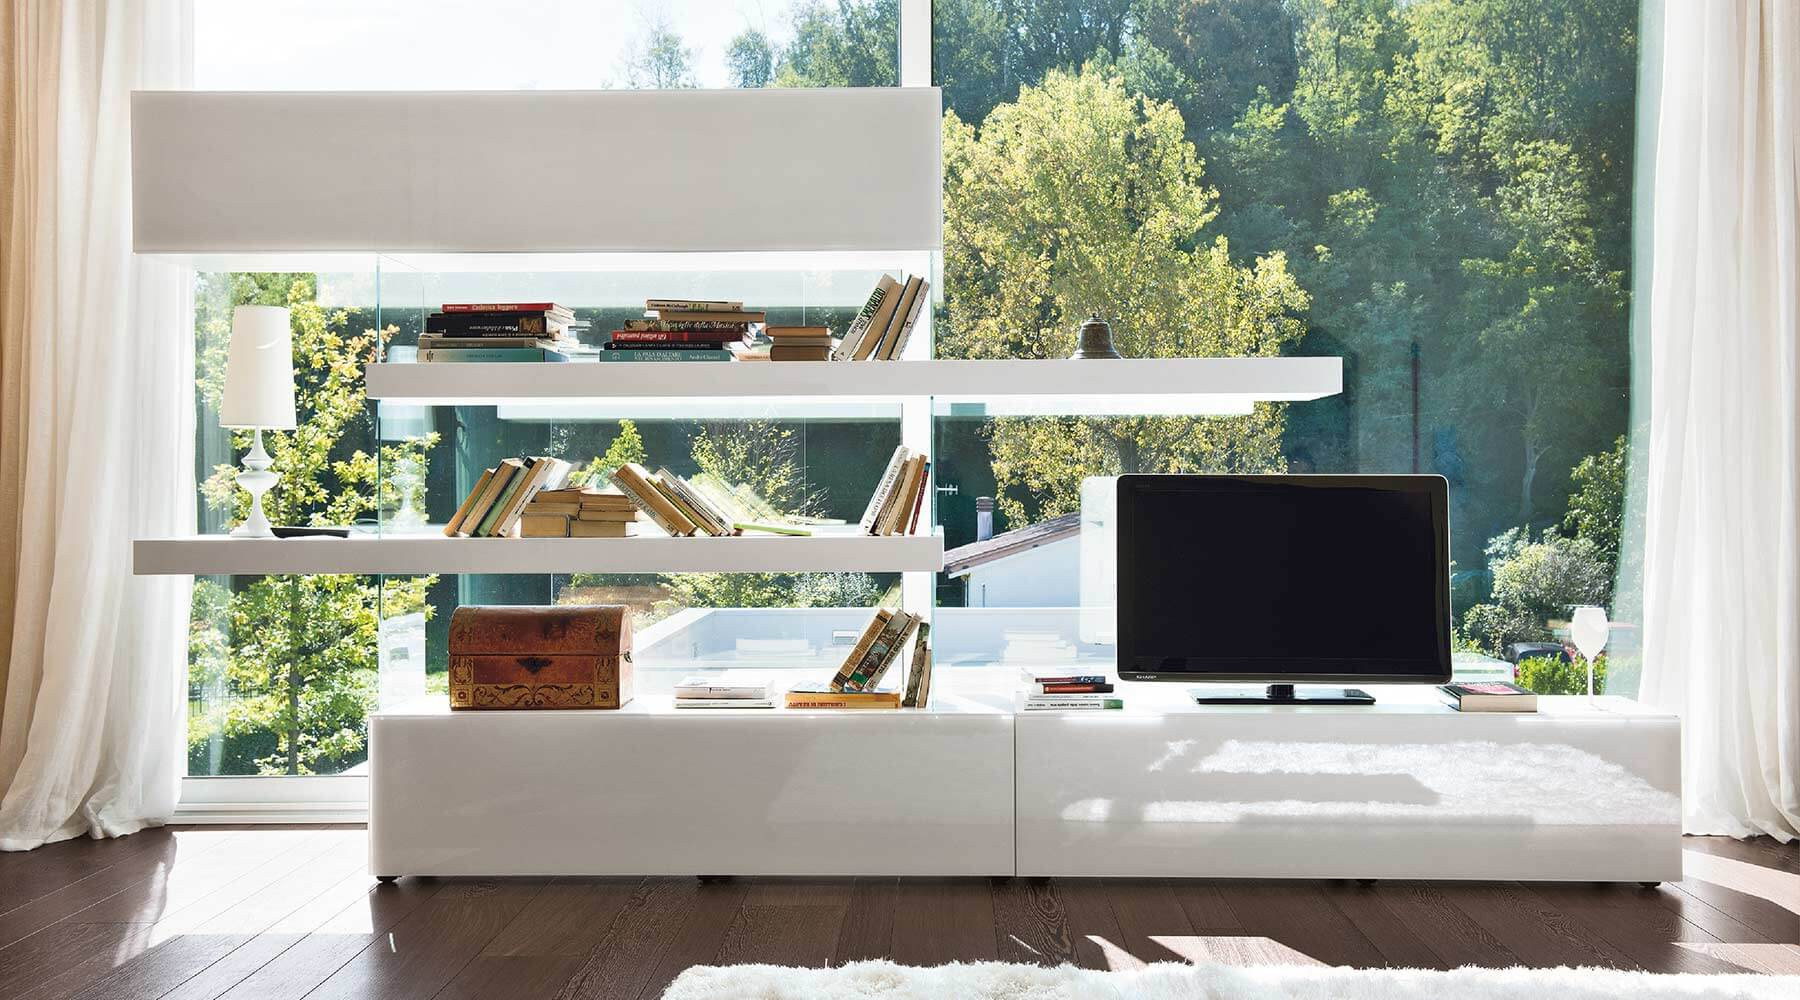 Mobile Tv Design Clarkson Mobile Tv Stand With Mobile Tv Design  # Porte Television Design